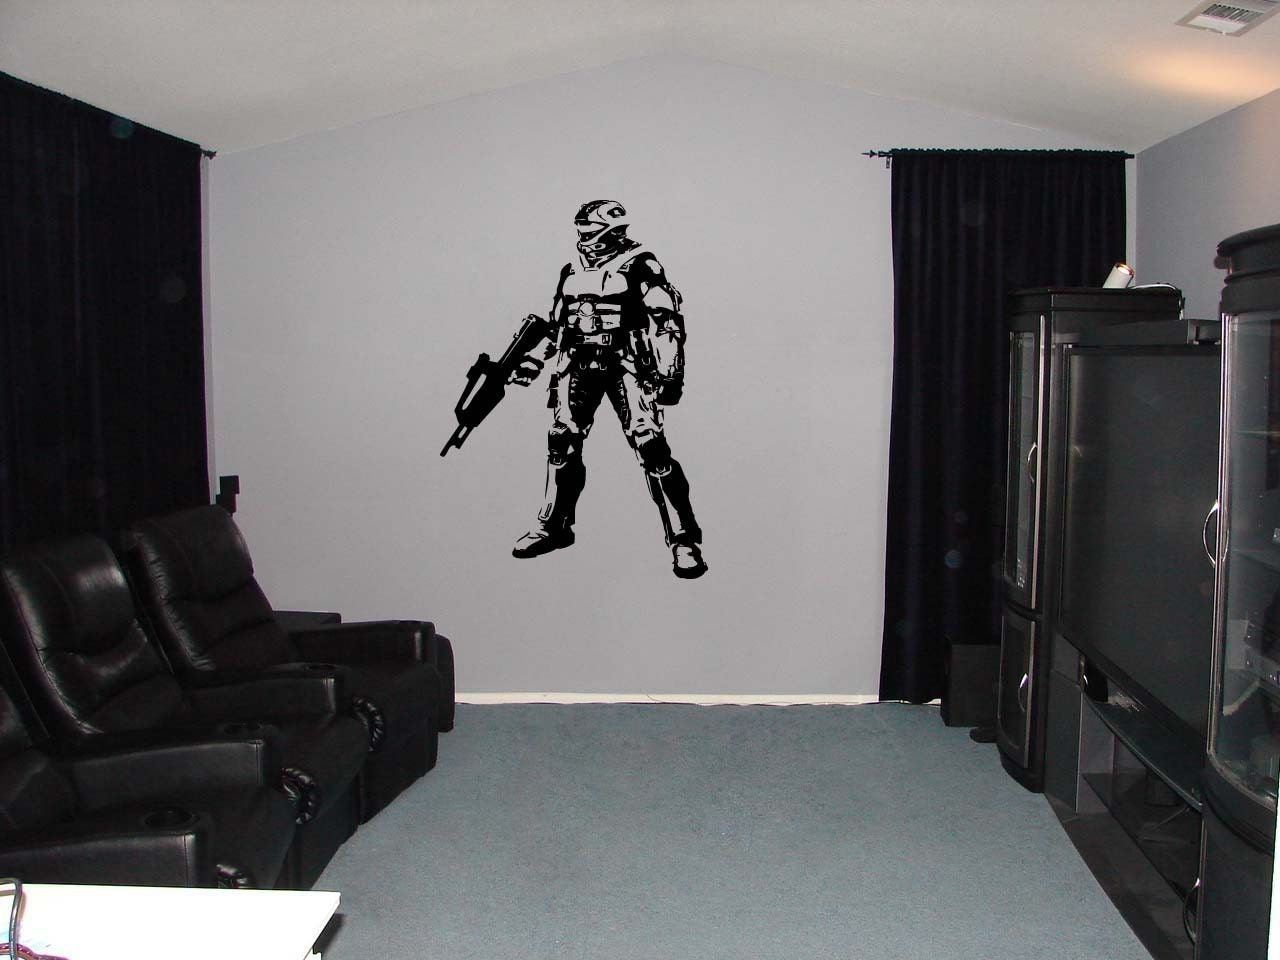 halo xbox video game vinyl wall sticker 34h by